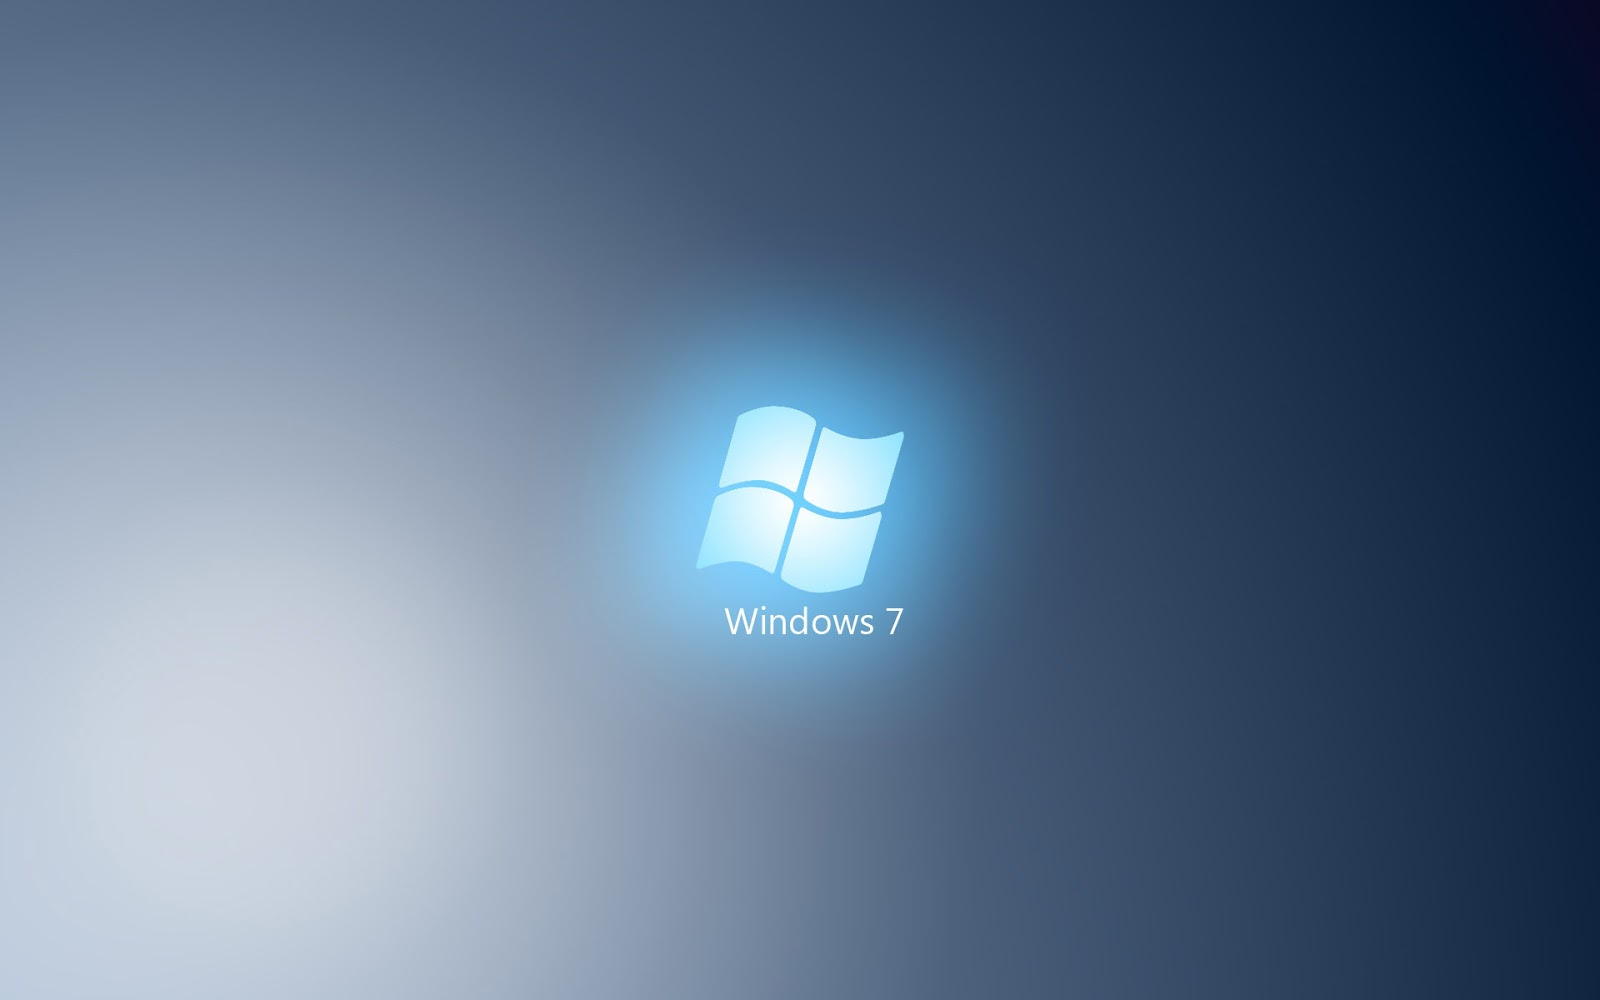 Fondos De Escritorio Windows 7 Full Hd: Wallpaper Windows 7 Full Hd